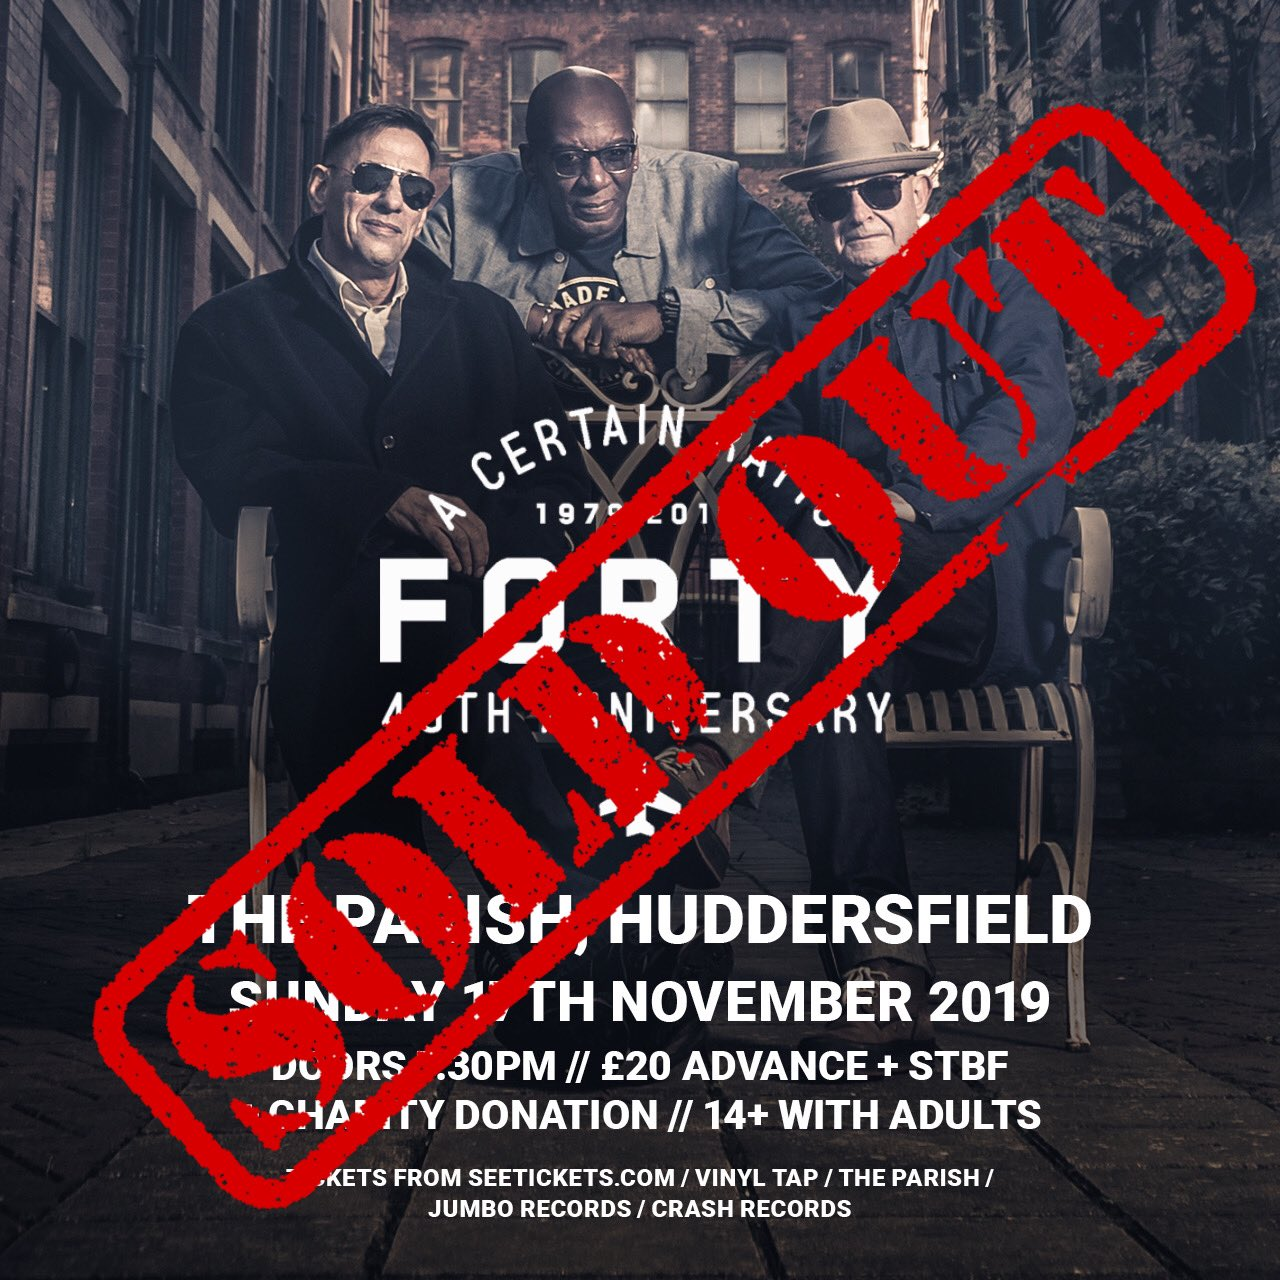 17 November 2019, The Parish, Huddersfield - ACR Gigography